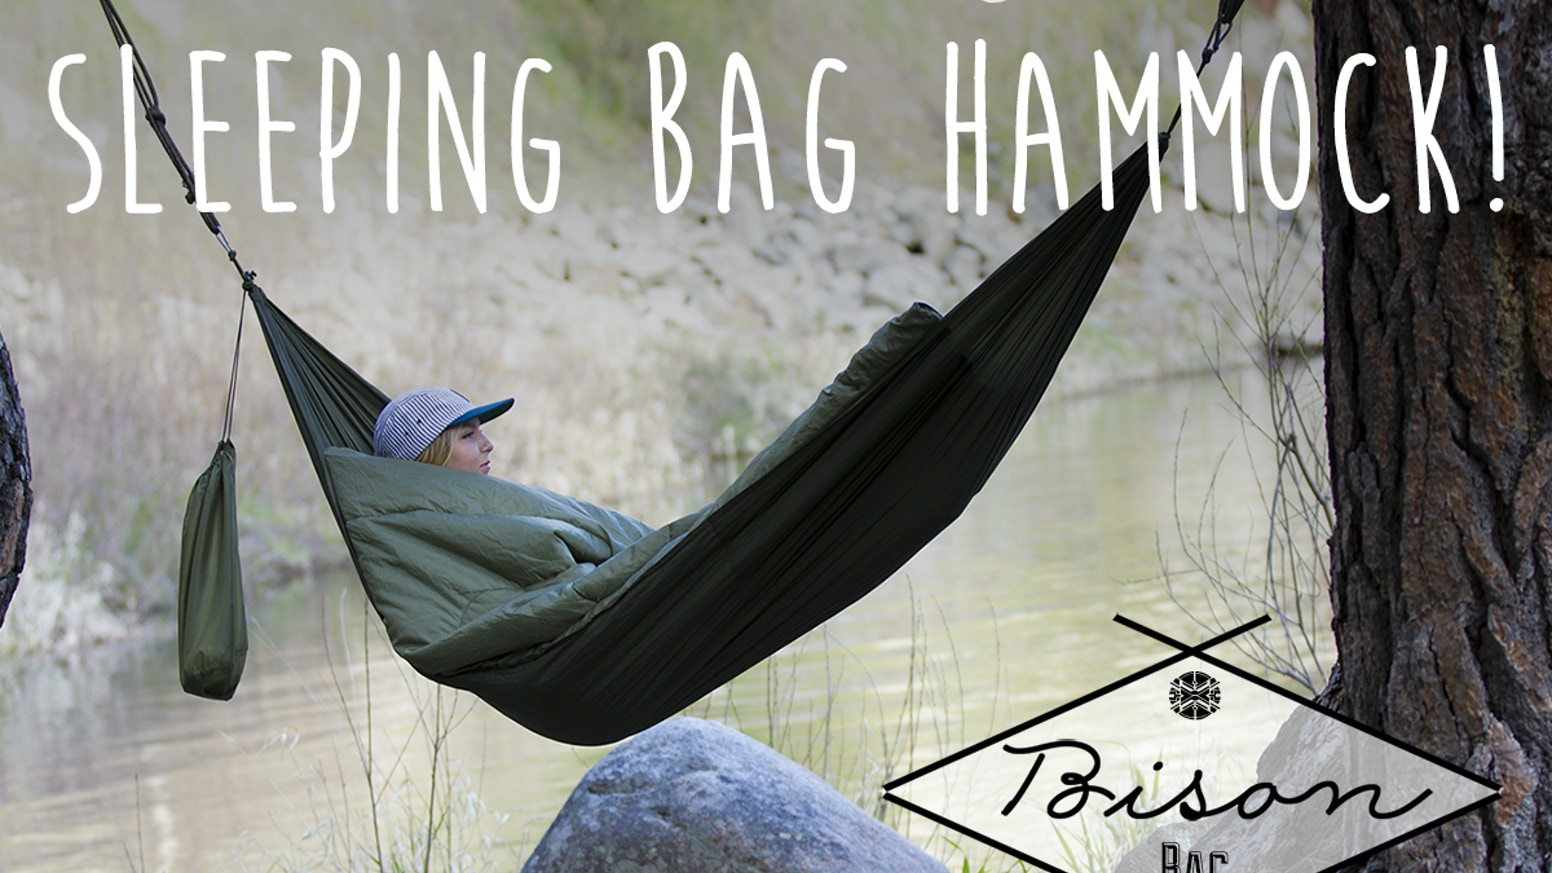 It's as if a sleeping bag had a baby with a hammock.